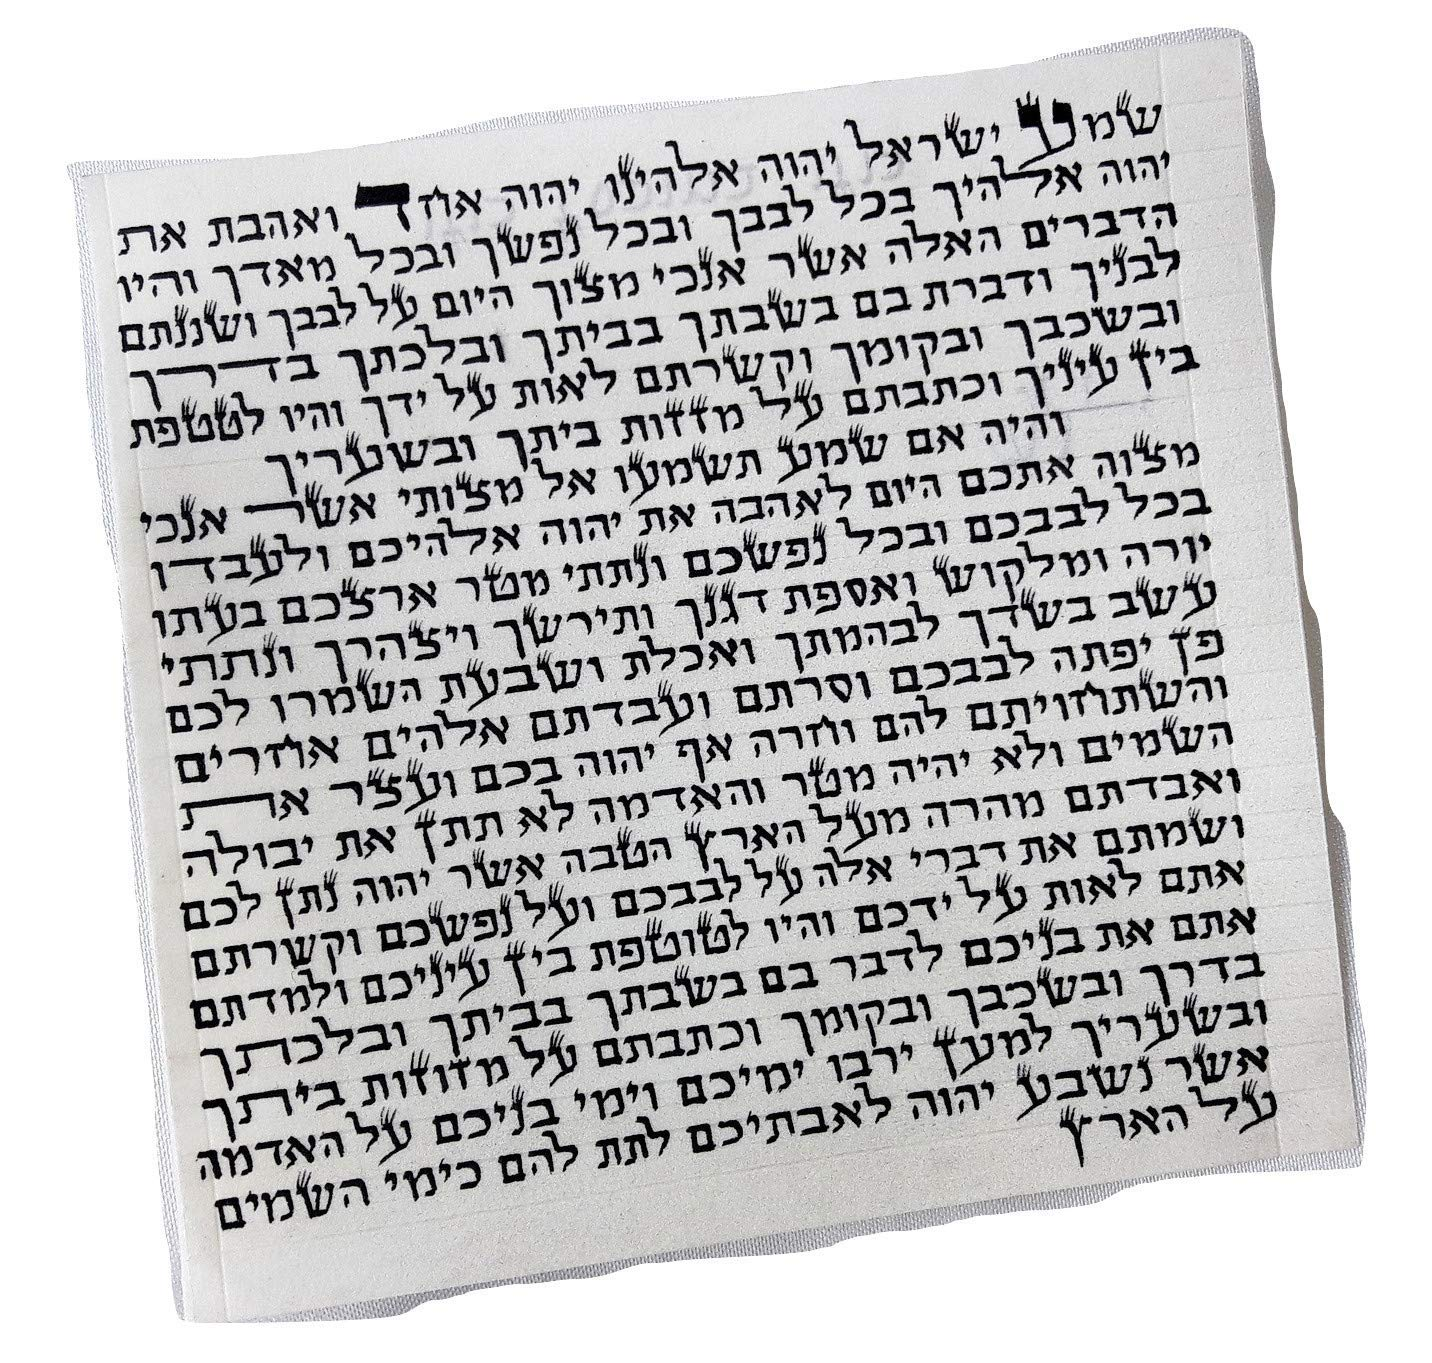 image about Mezuzah Scroll Printable referred to as Inexpensive Parchment Scroll, obtain Parchment Scroll promotions upon line